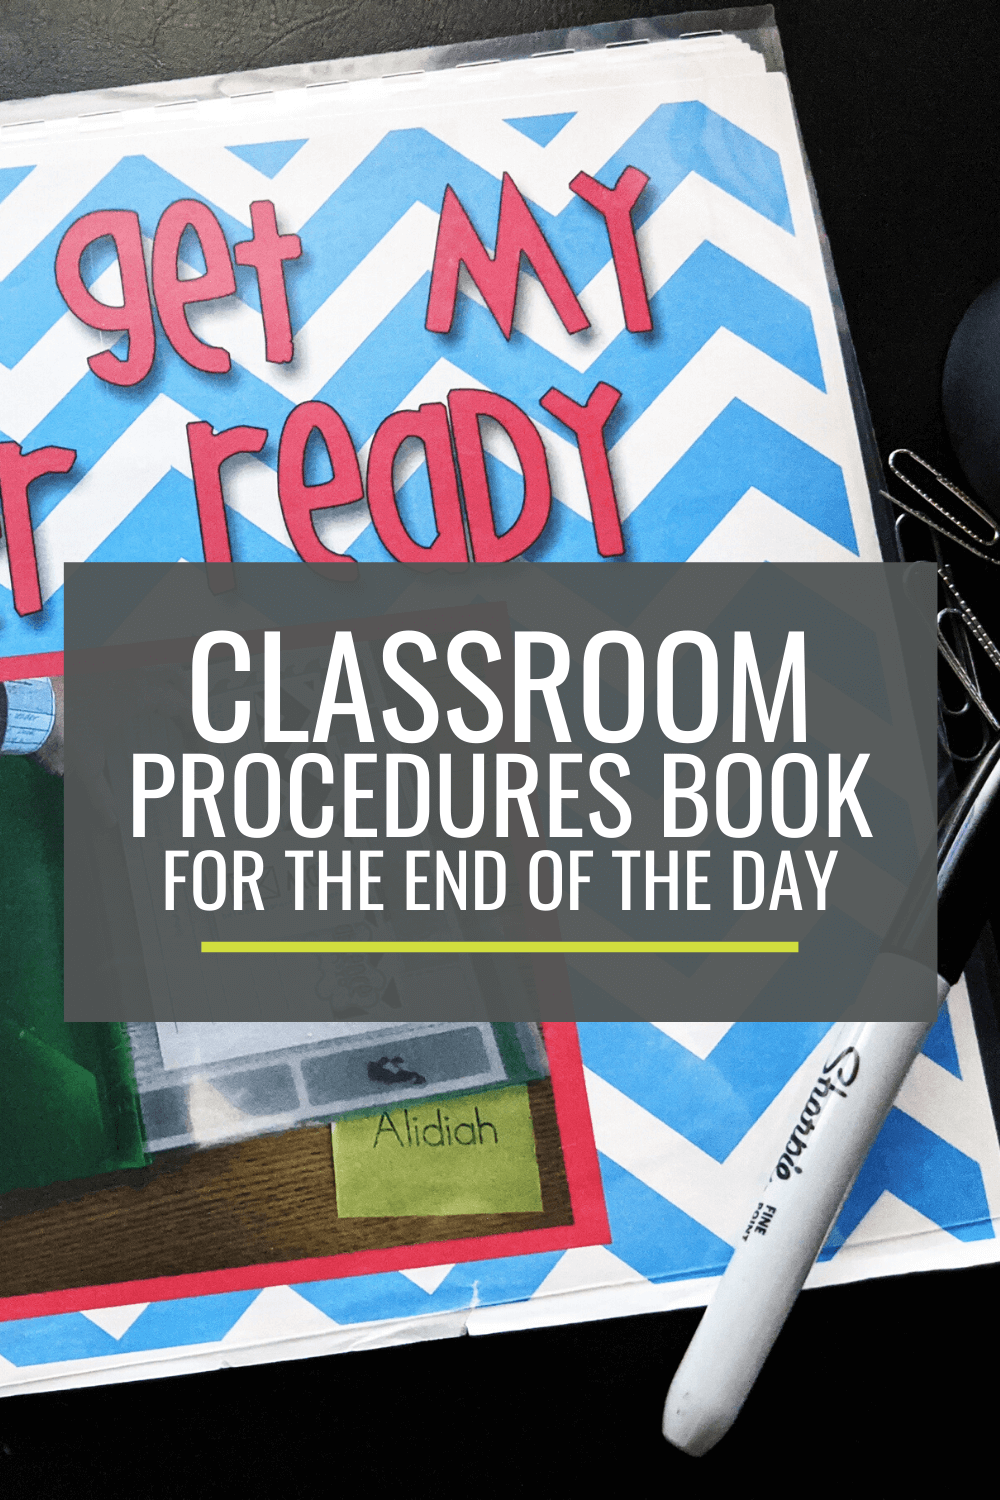 Classroom Procedures Book for the End of the Day